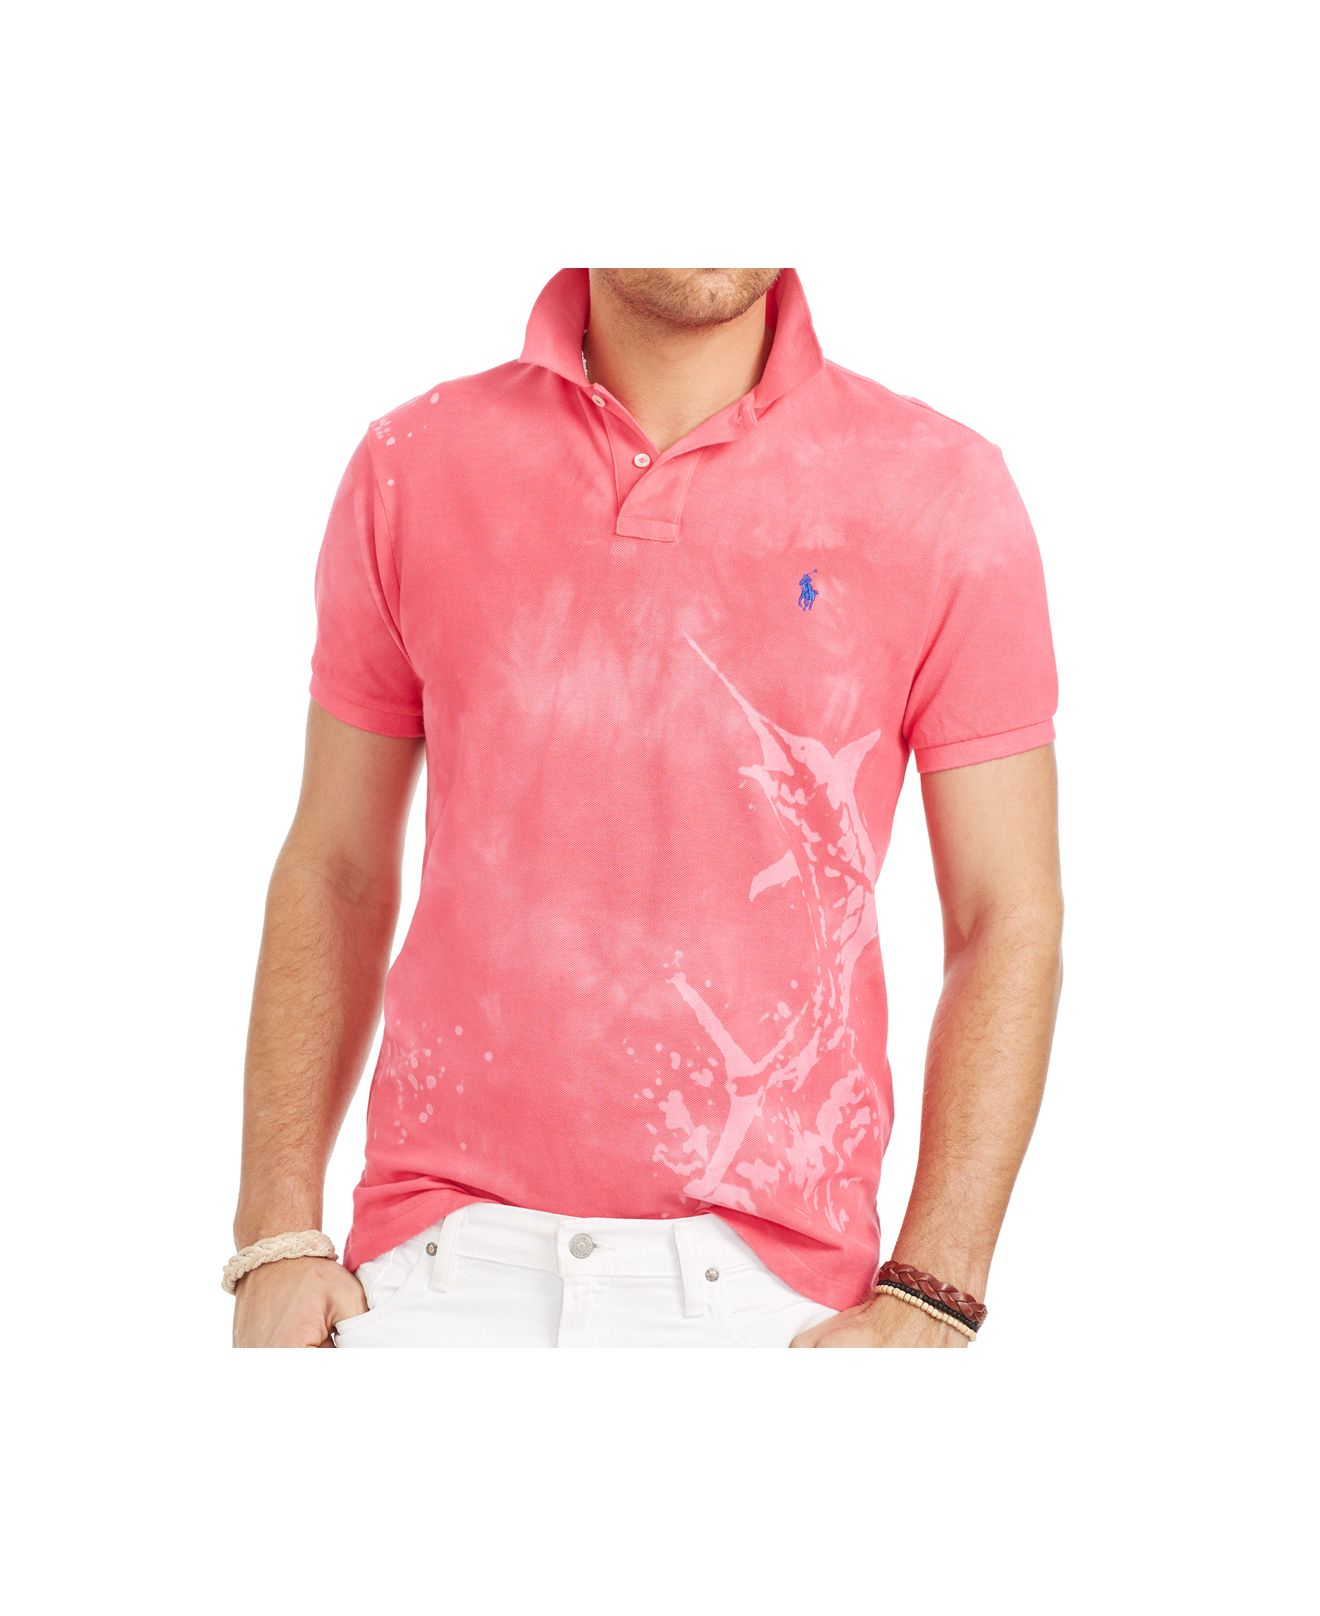 Lyst polo ralph lauren big and tall custom fit tropical for Big and tall custom polo shirts